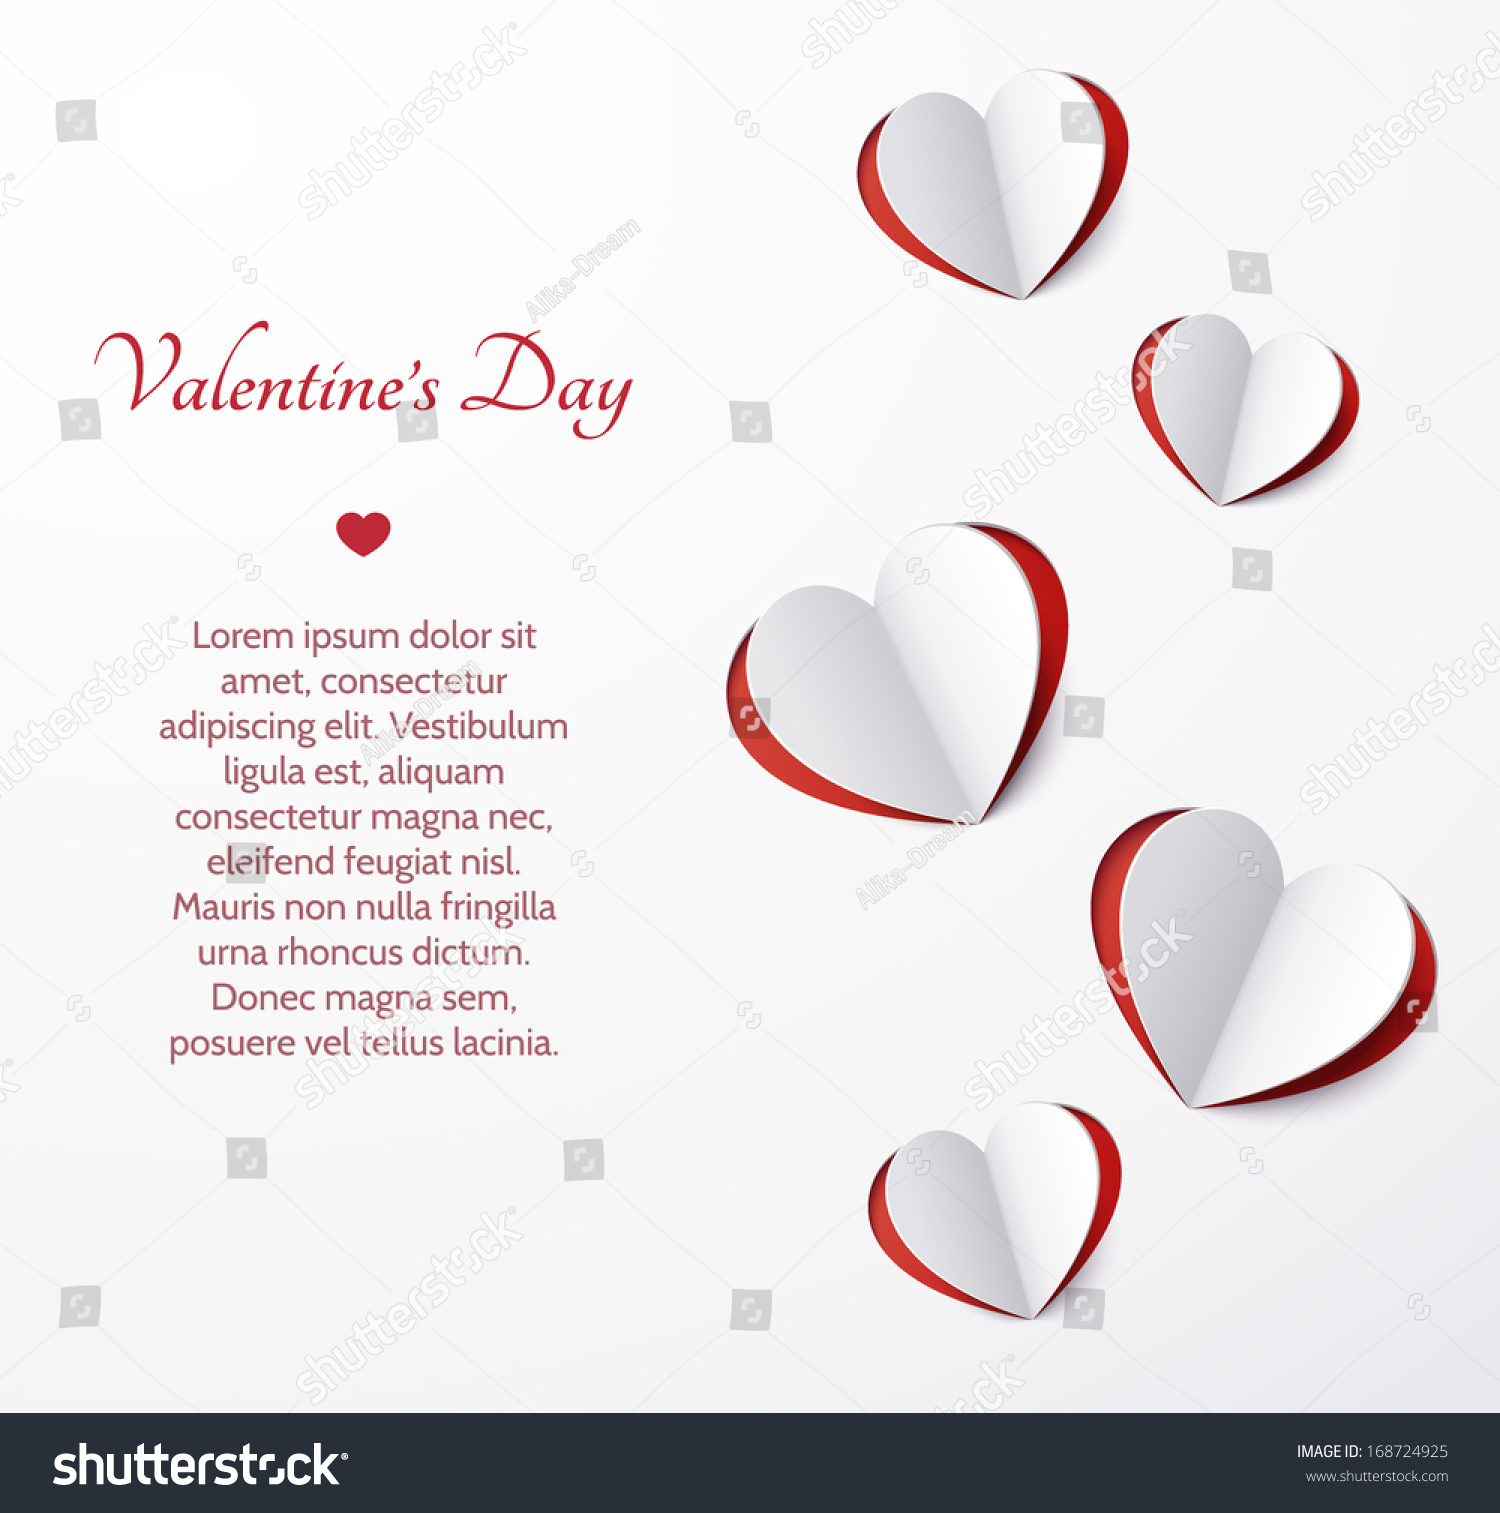 Card With Hearts Cut Out Of Paper Valentine S Day